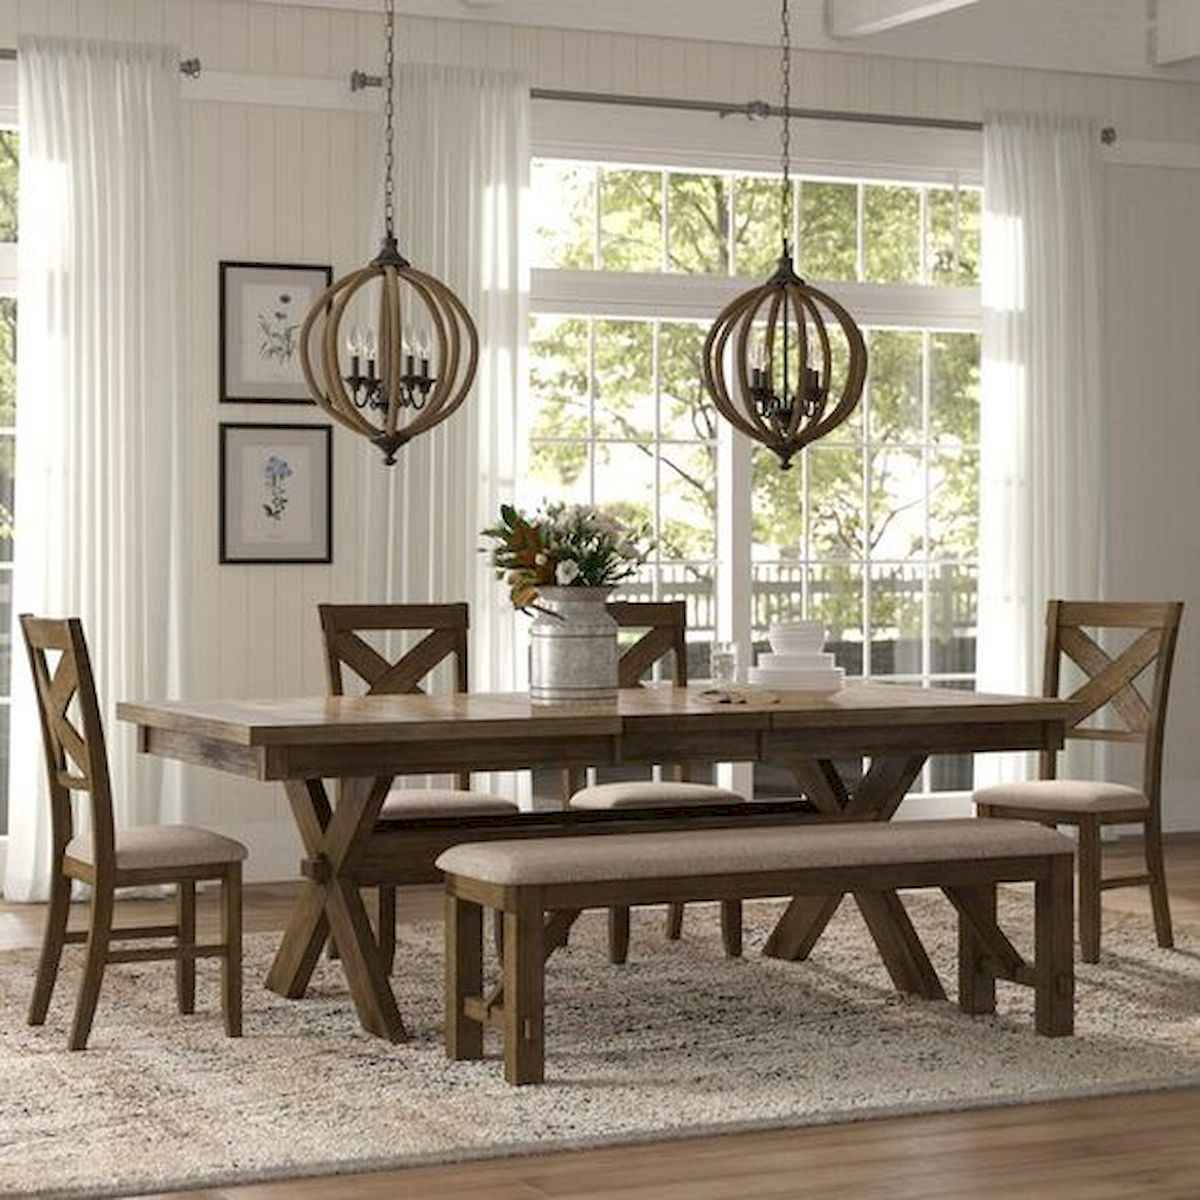 55 Stunning DIY Projects Furniture Tables Dining Rooms Design Ideas (4)